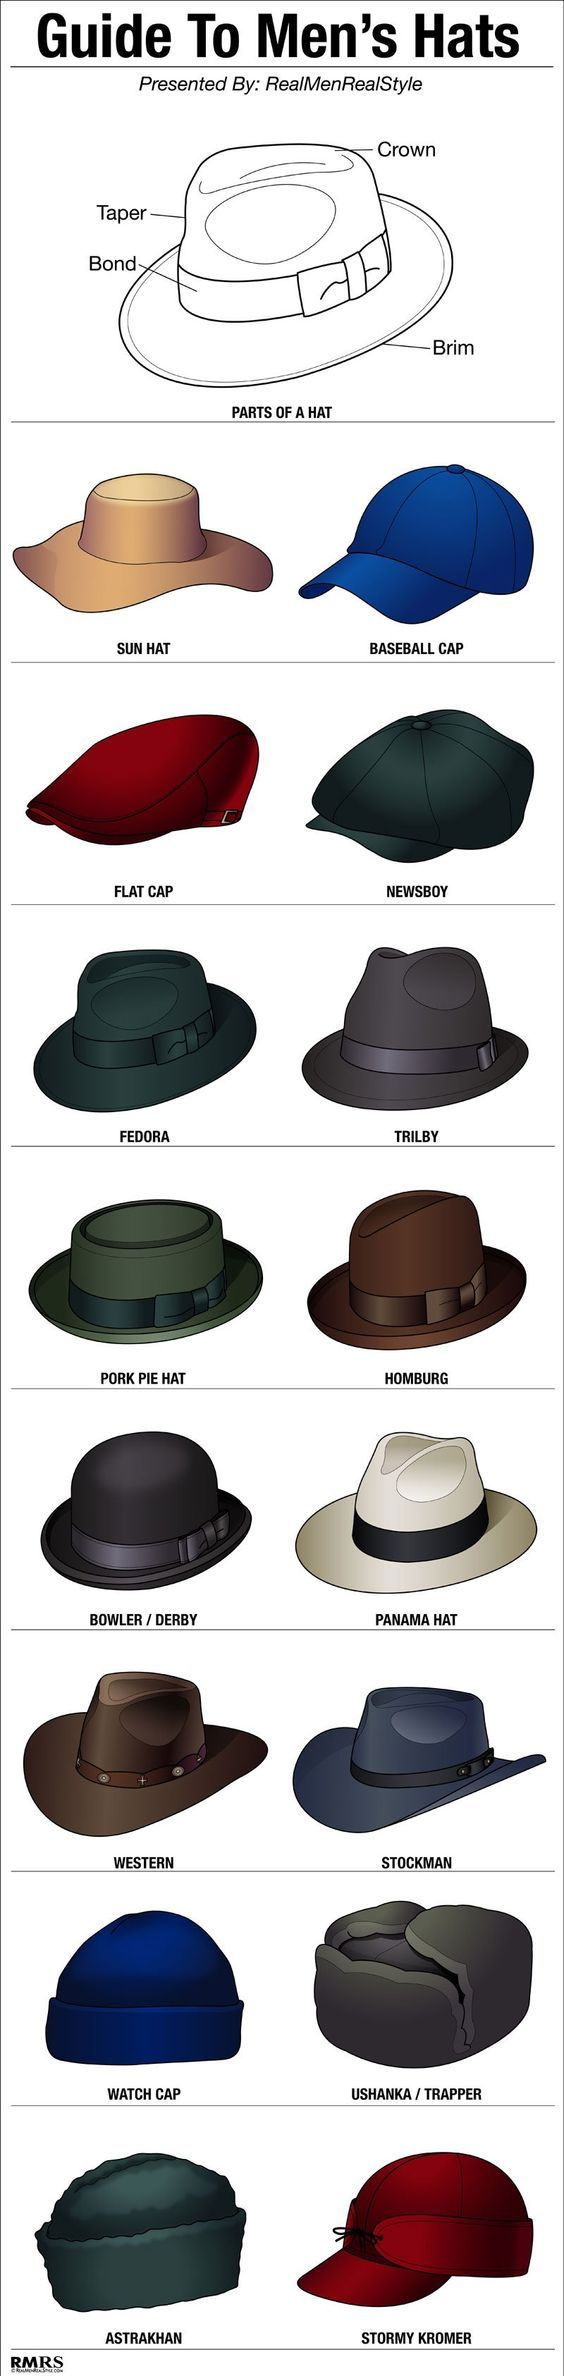 A great guide for Men's hats by http://www.businessinsider.com/a-guide-to-stylish-mens-hats-2014-1. You can find these styles at www.broner.com: